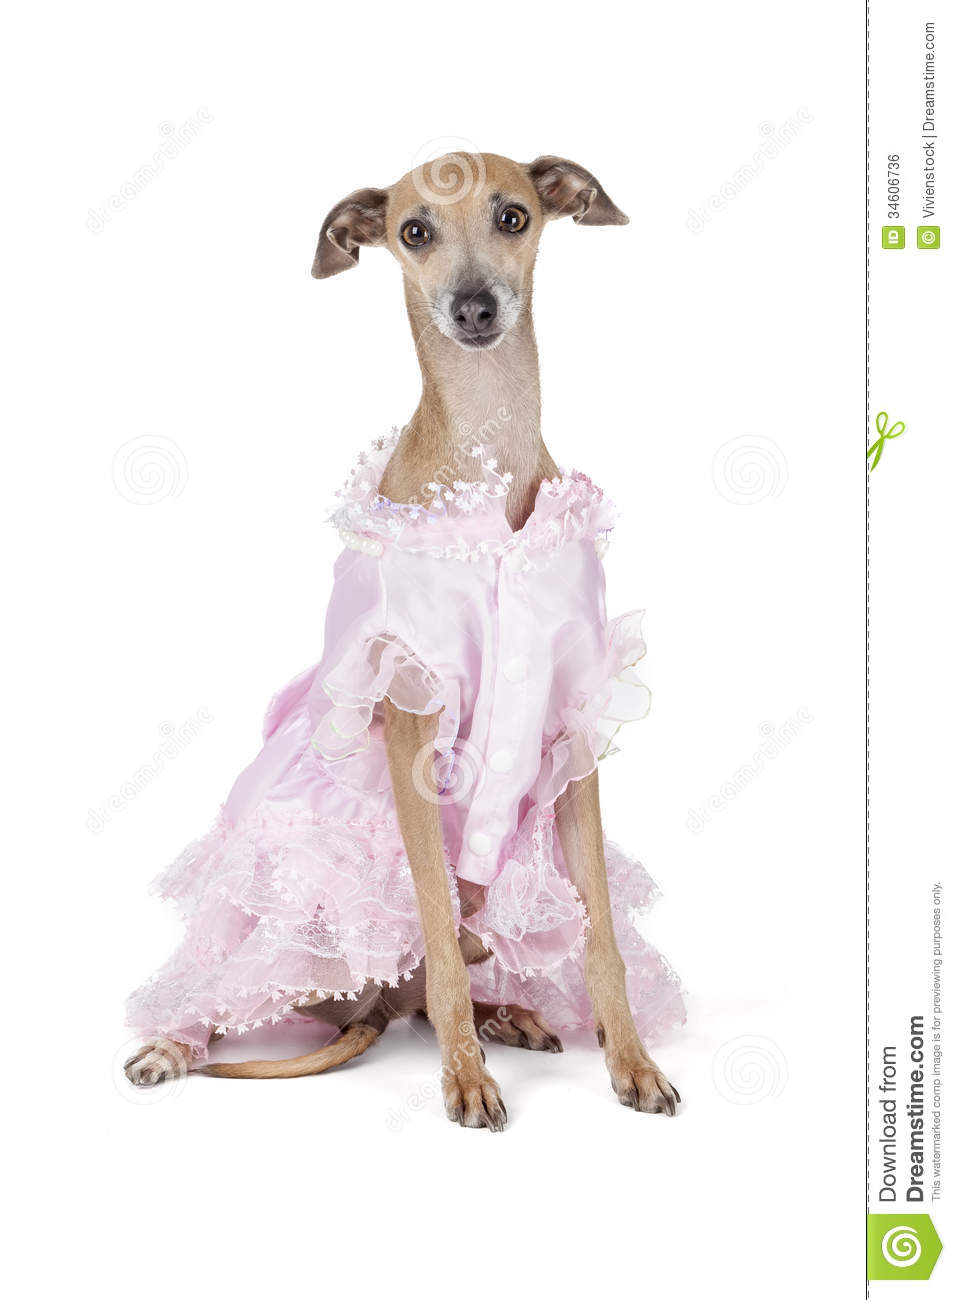 Italian greyhound in a dress on a white background in studio